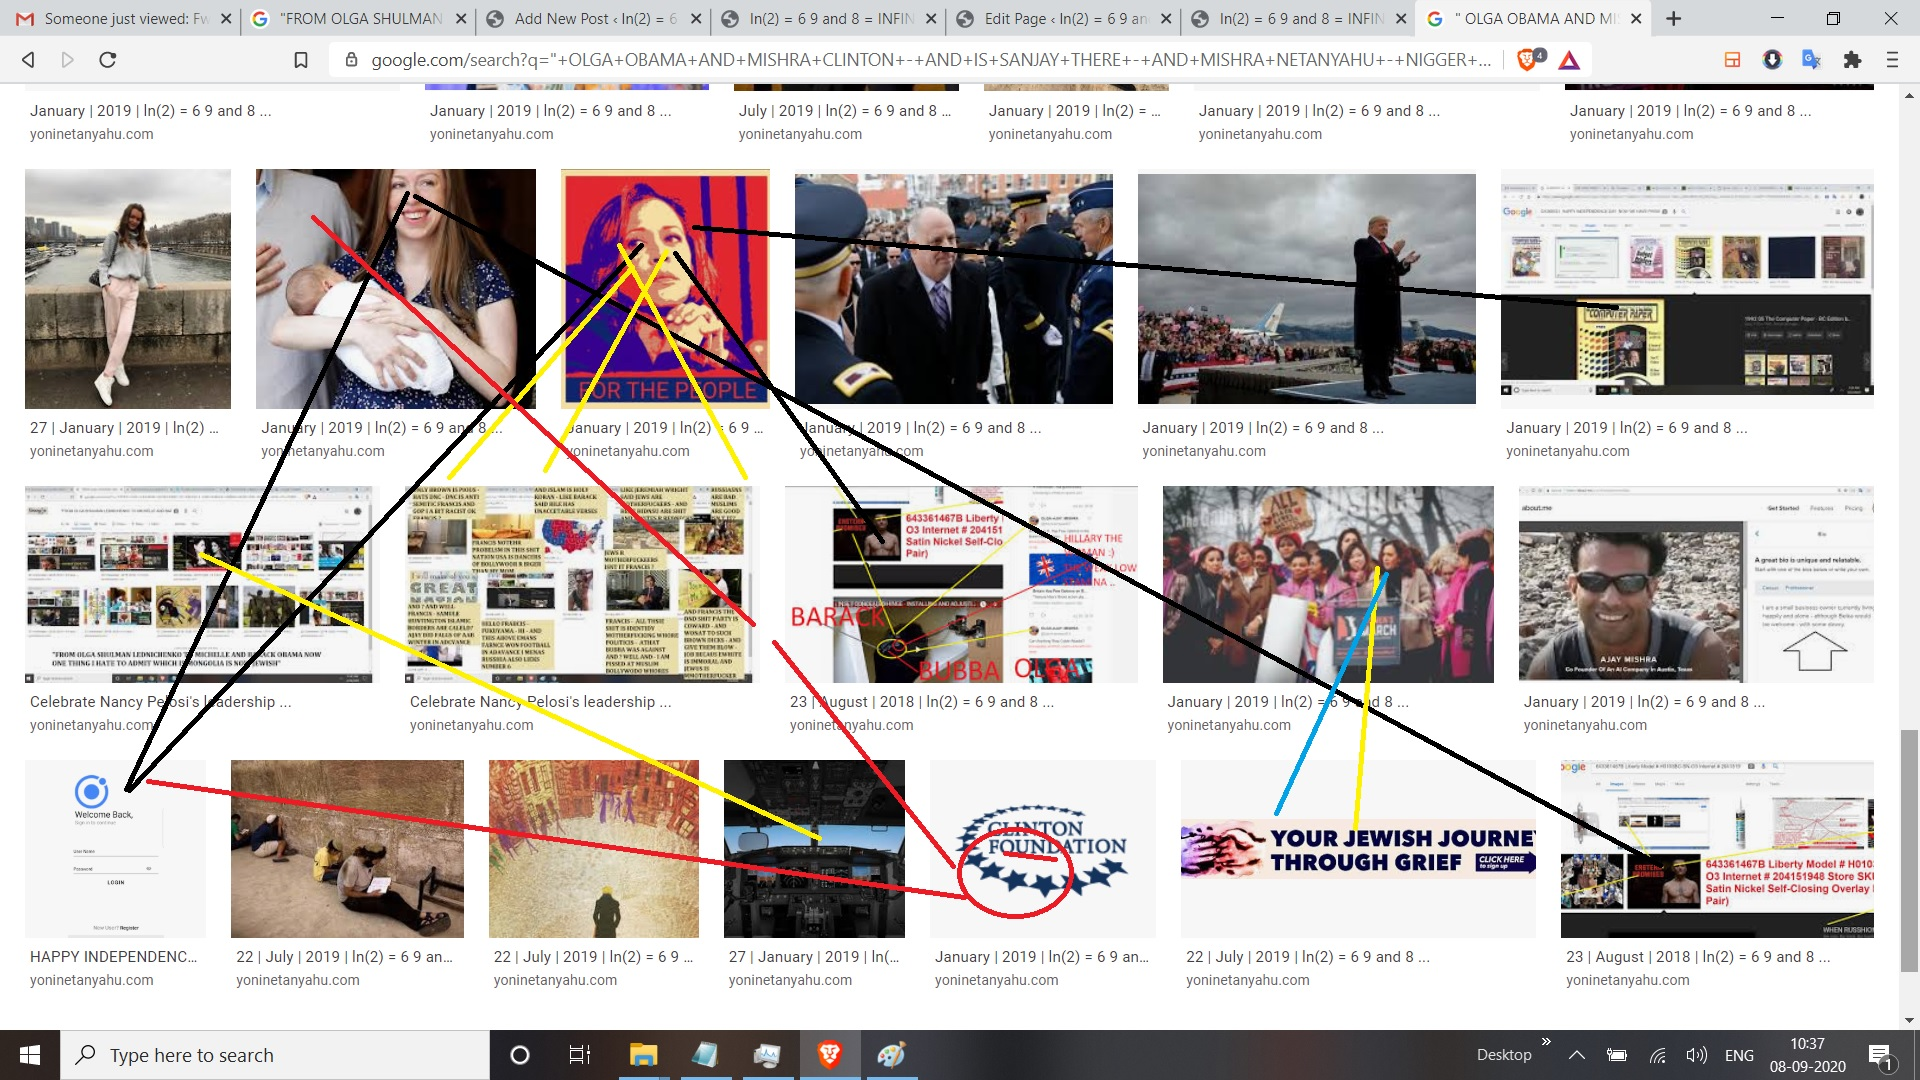 OLGA OBAMA AND MISHRA CLINTON AND IS SANJAY THERE AND MISHRA NETANYAHU NIGGER JEW ANDHONDU AND CHIRSTIAN REAL LIFE -MESSAGE AND REQUEST U SHOULD NOT IGNORE ALL OF U THE VOICE OF SOEONES SOUL